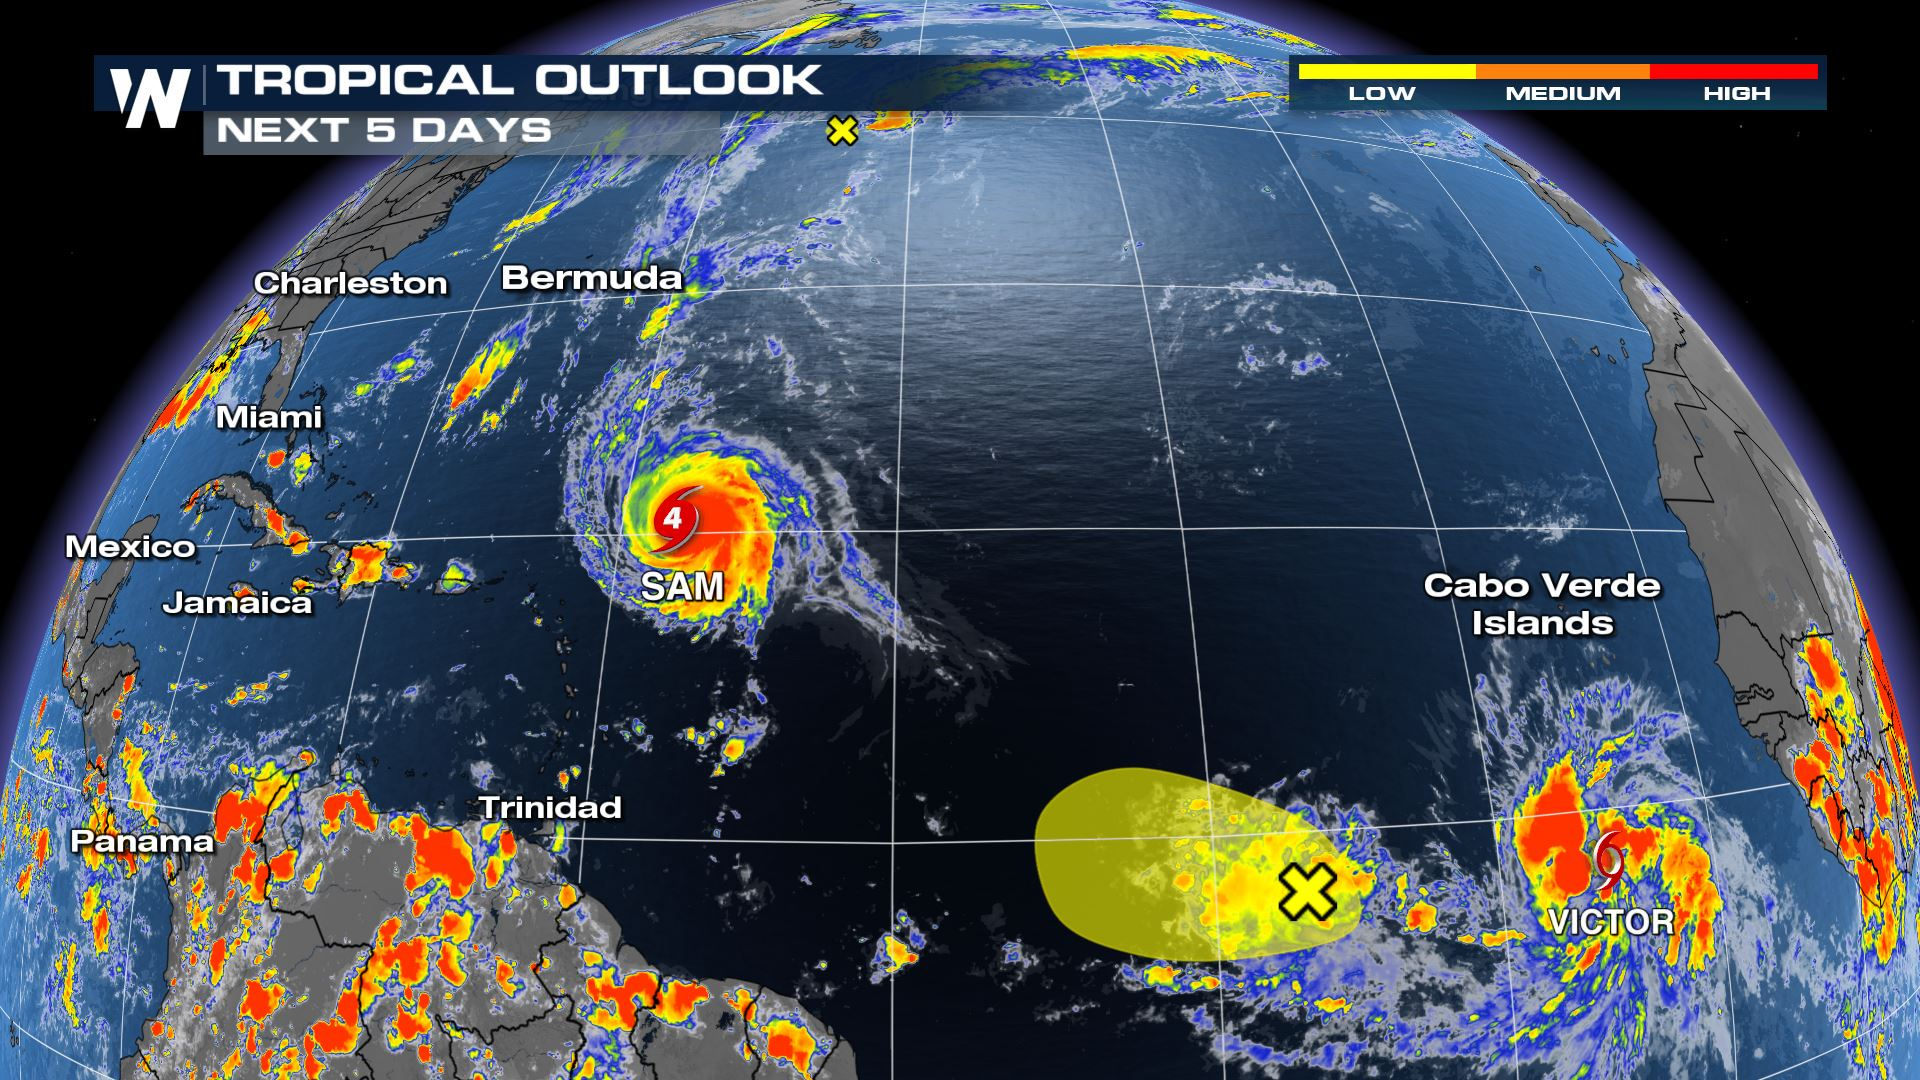 Atlantic Tropical Update - Monitoring 2 Areas of Interest